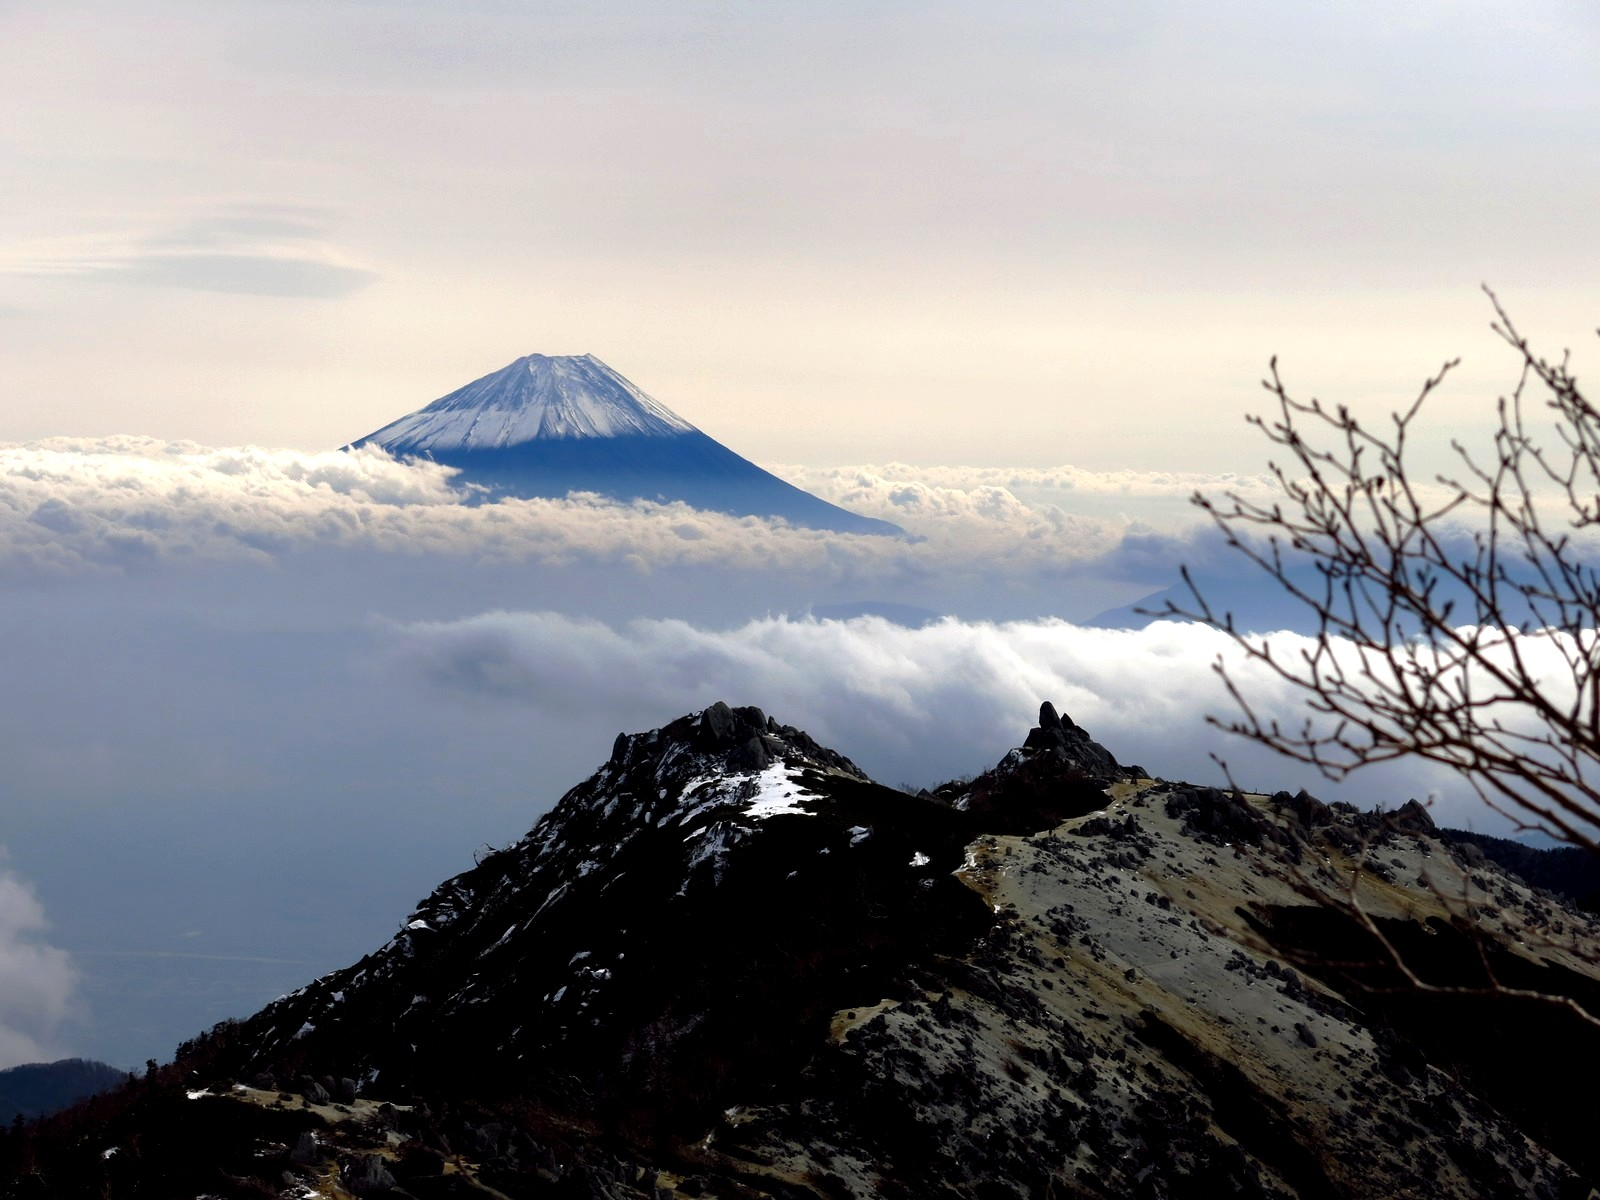 Houou san ridge, Japan's Southern Alps. Photo is by Julian Ross (with permission)